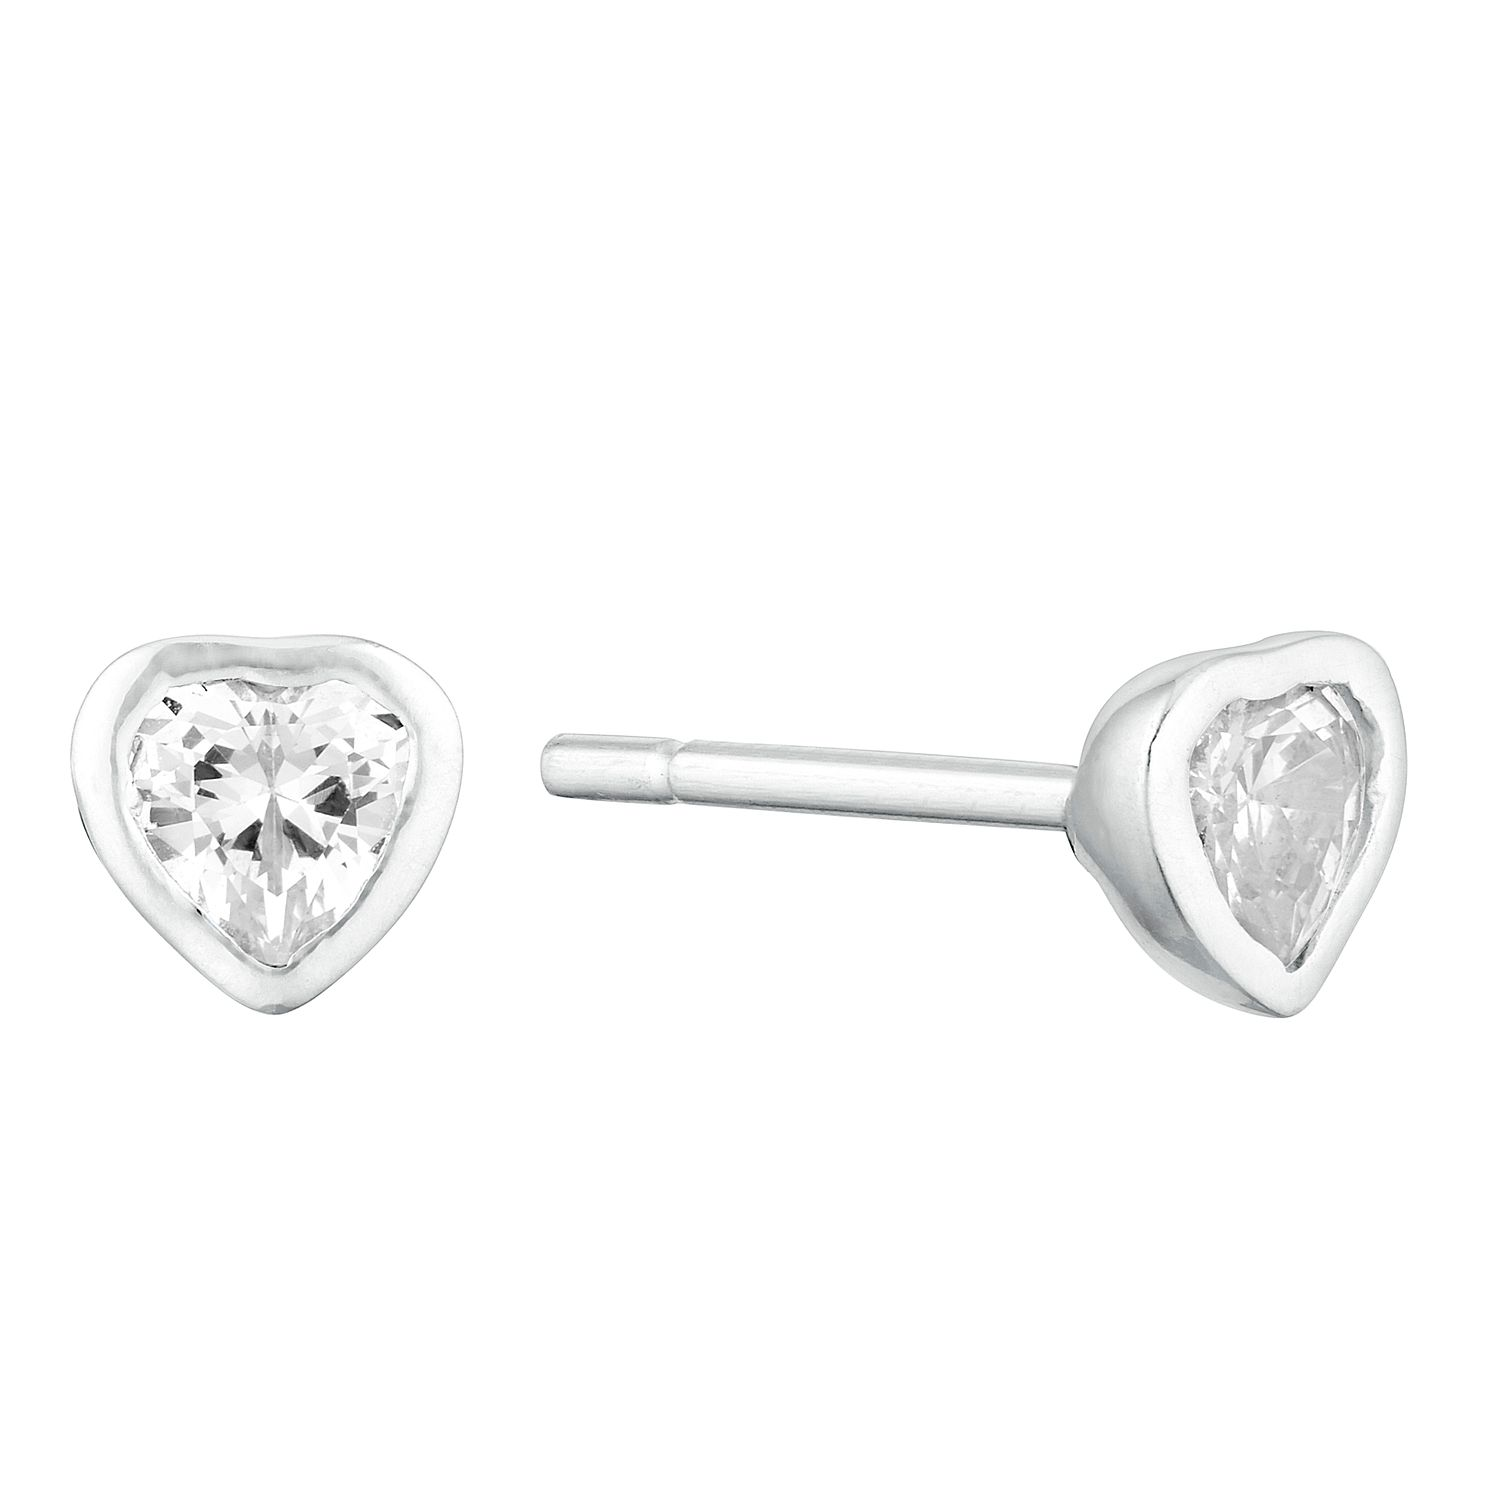 Children's Silver Cubic Zirconia Heart Stud Earrings - Product number 9664467